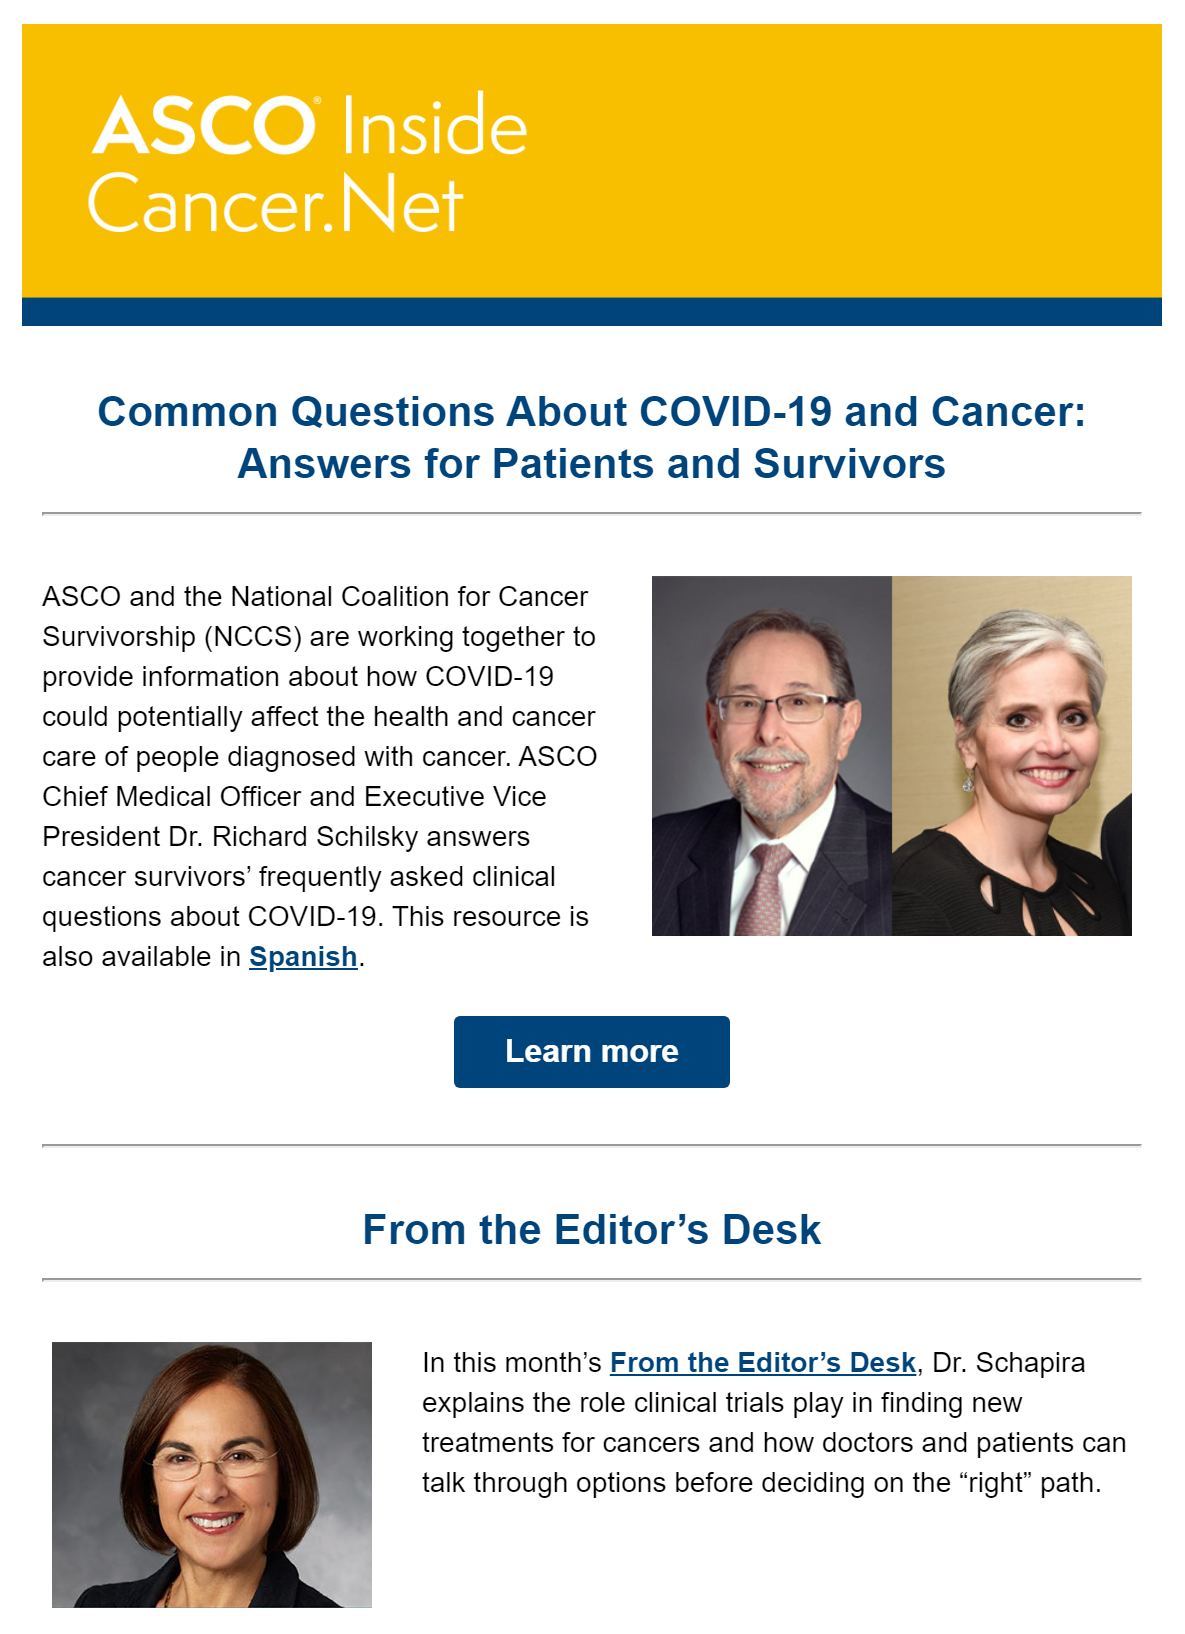 Recent issue of Inside Cancer.Net. Top Story offers information on common questions about COVID-19 for patients and survivors, with an additional feature, From the Editor's Desk.